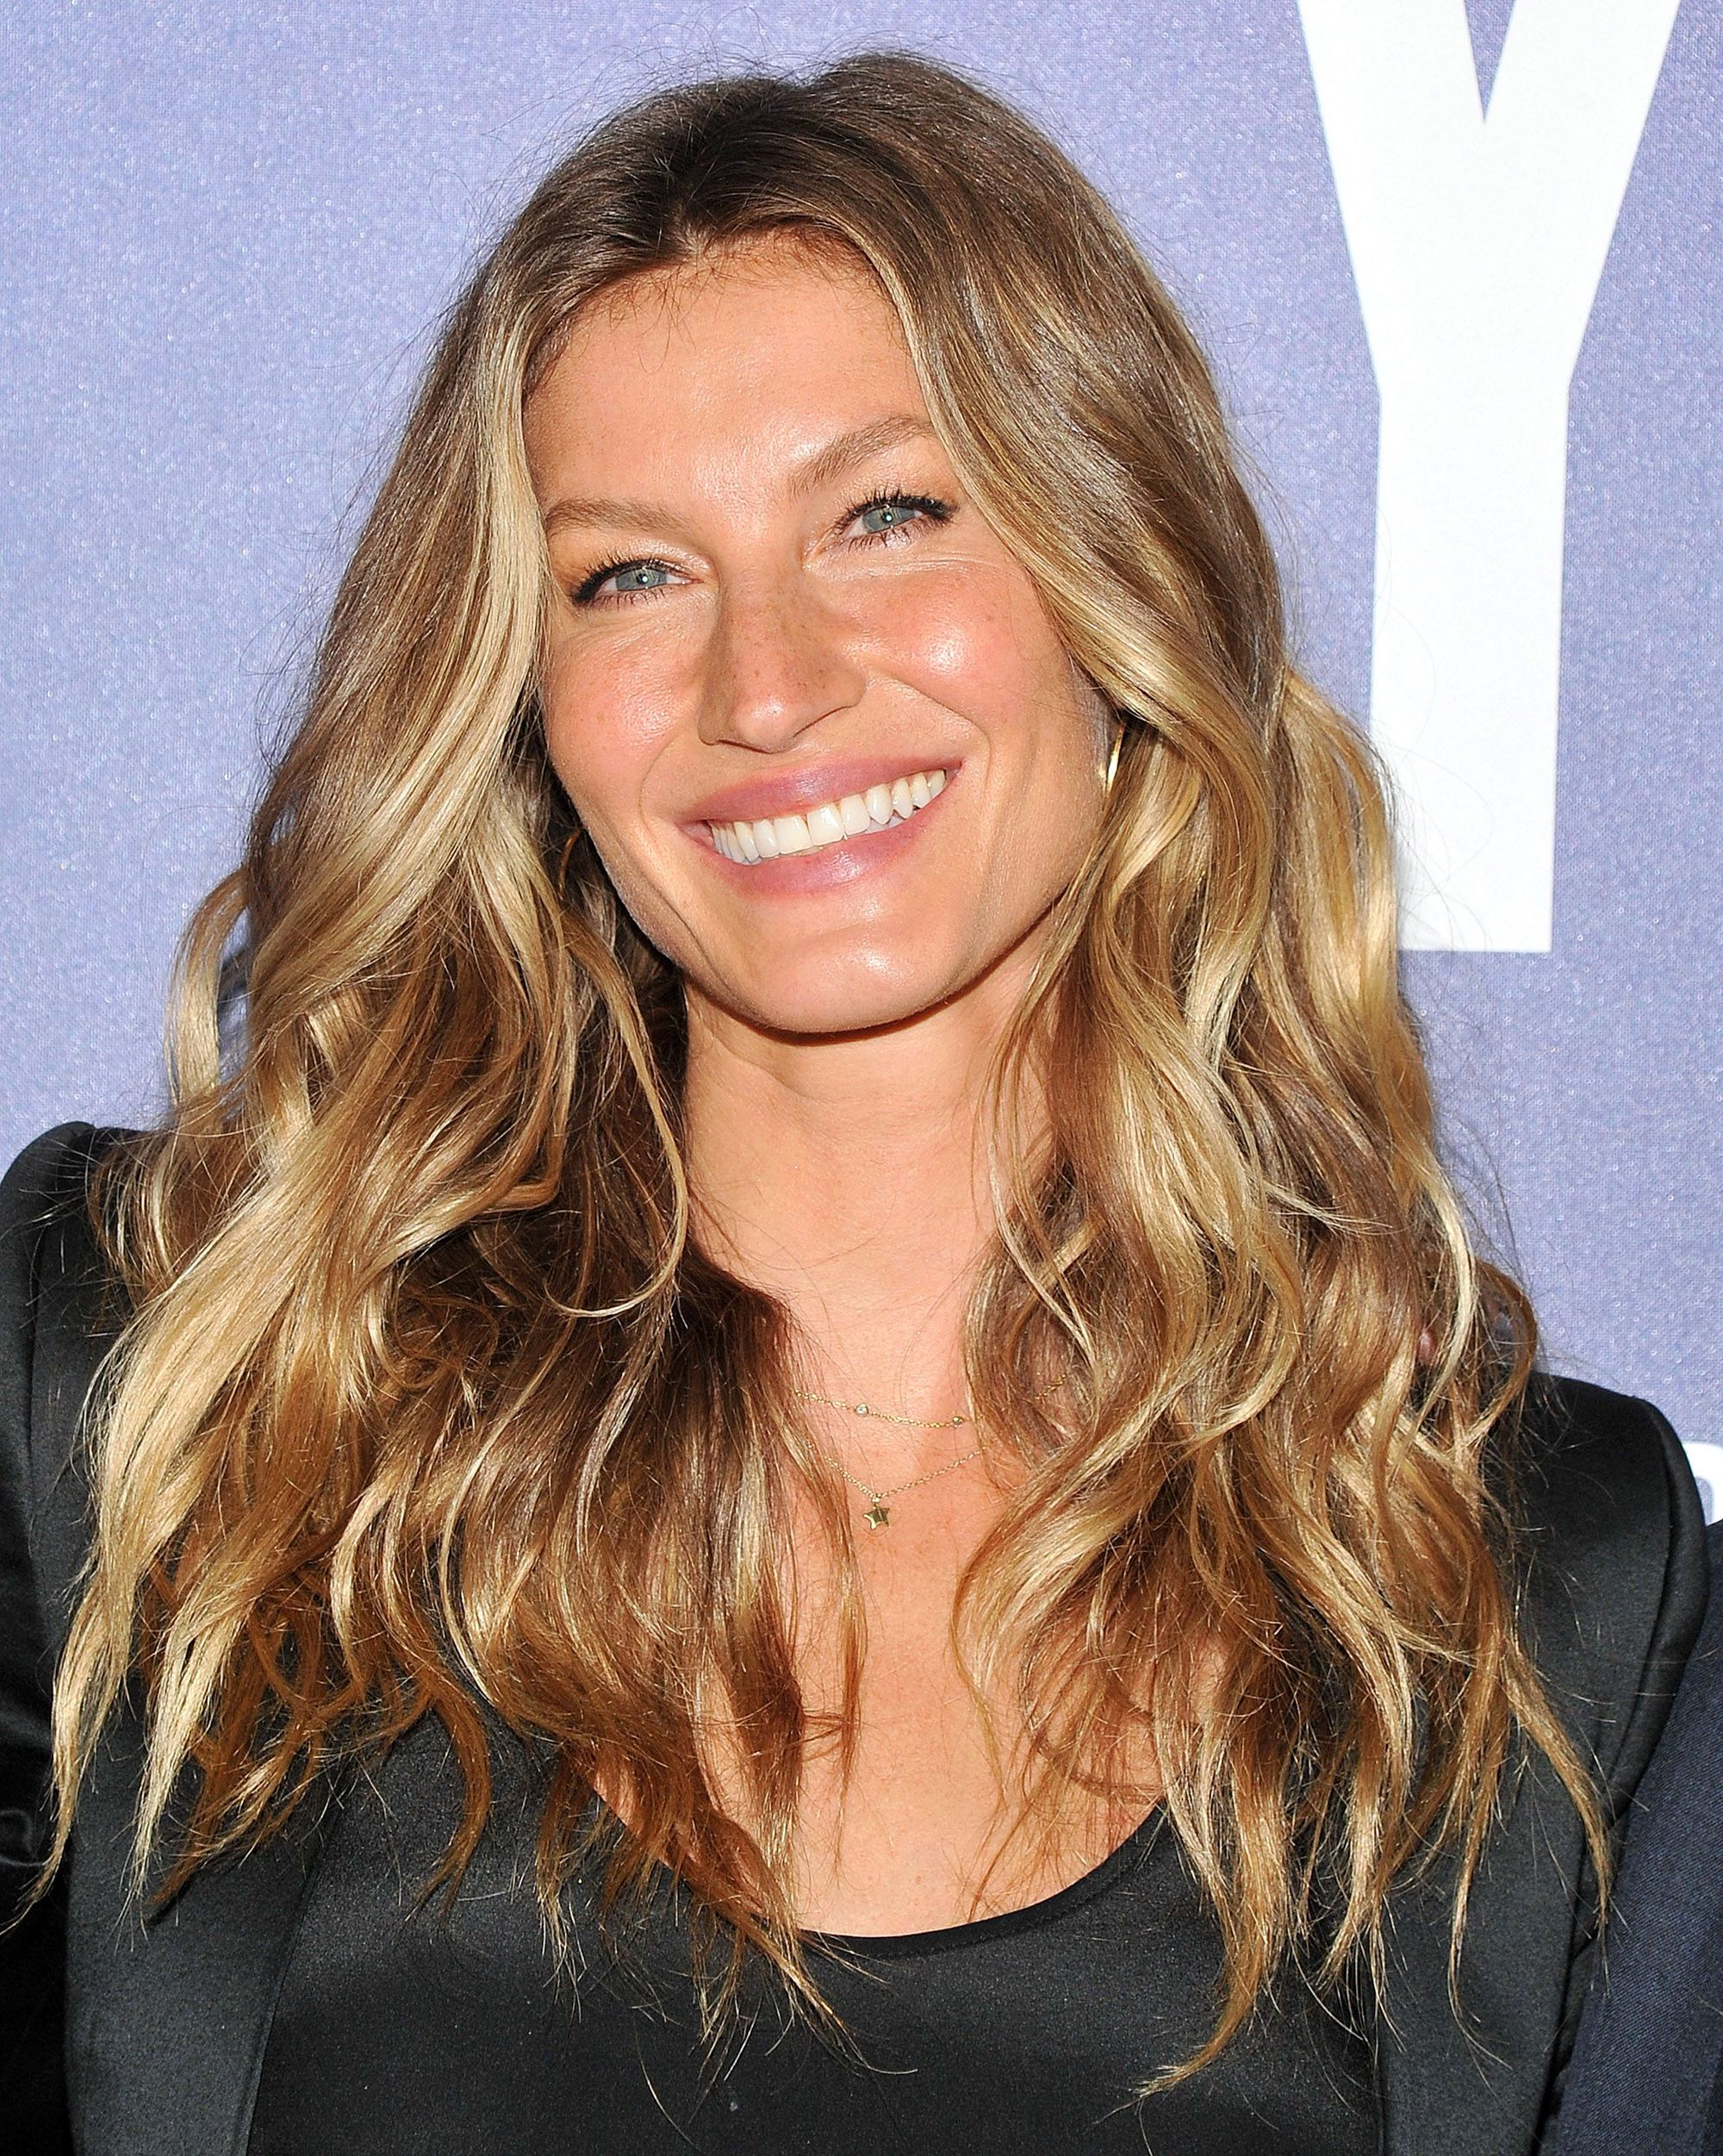 Gisele with long wavy bronde hair